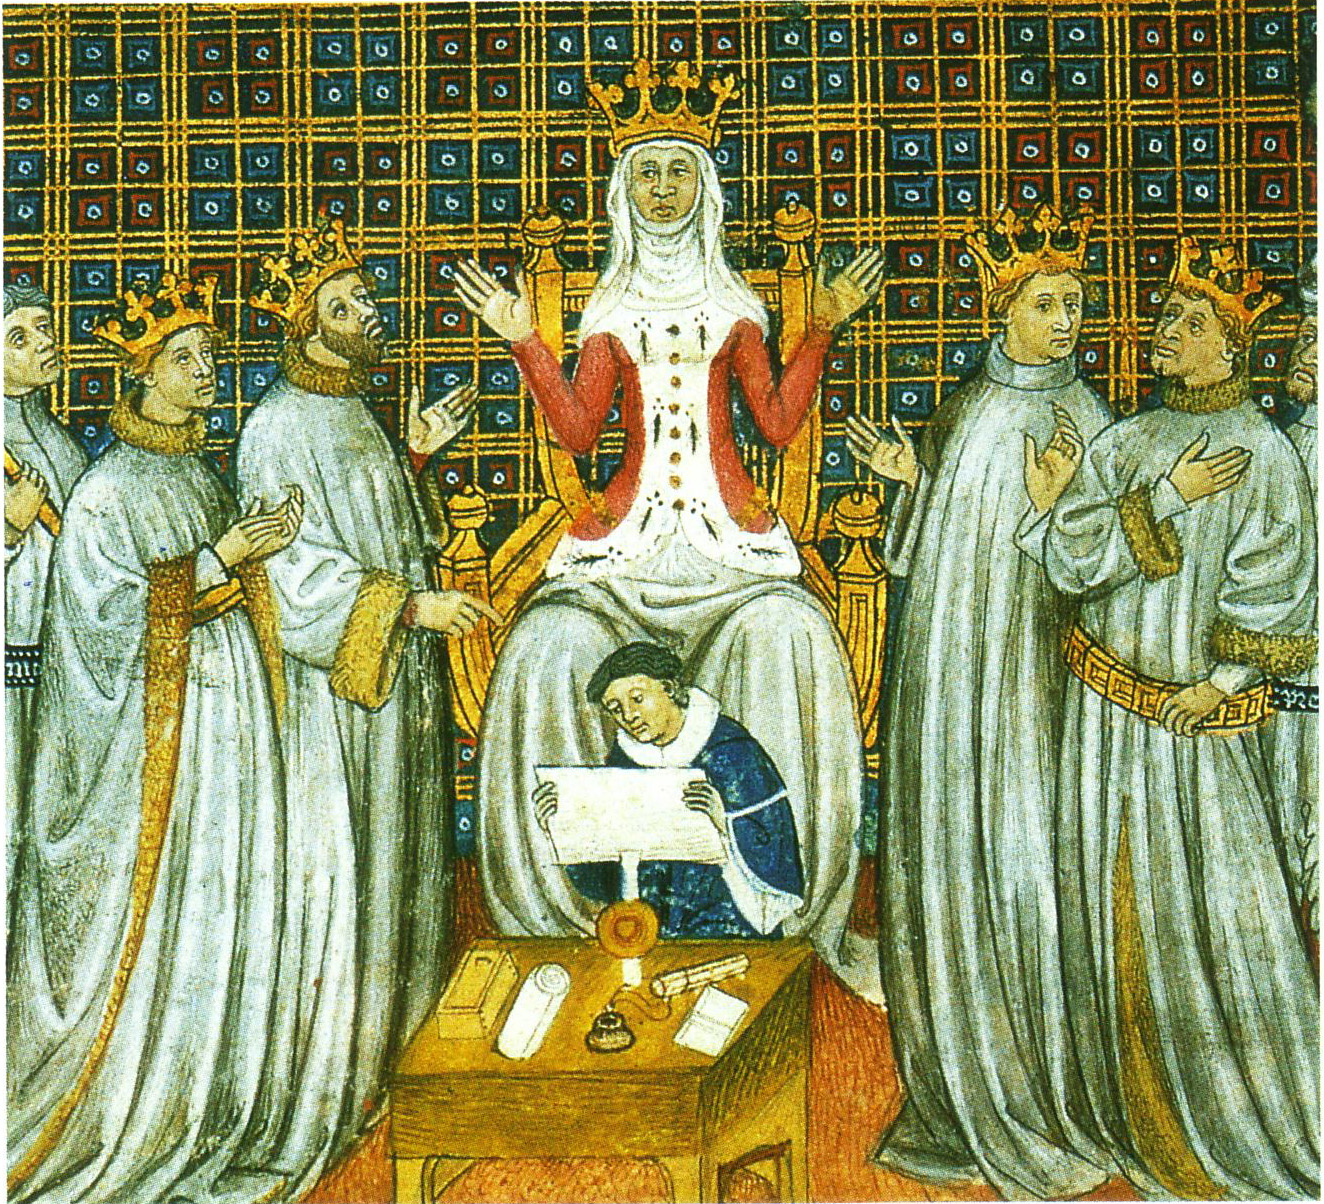 Clotilde of Burgundy divides the kingdom of the Franks between the four sons of Clovis I